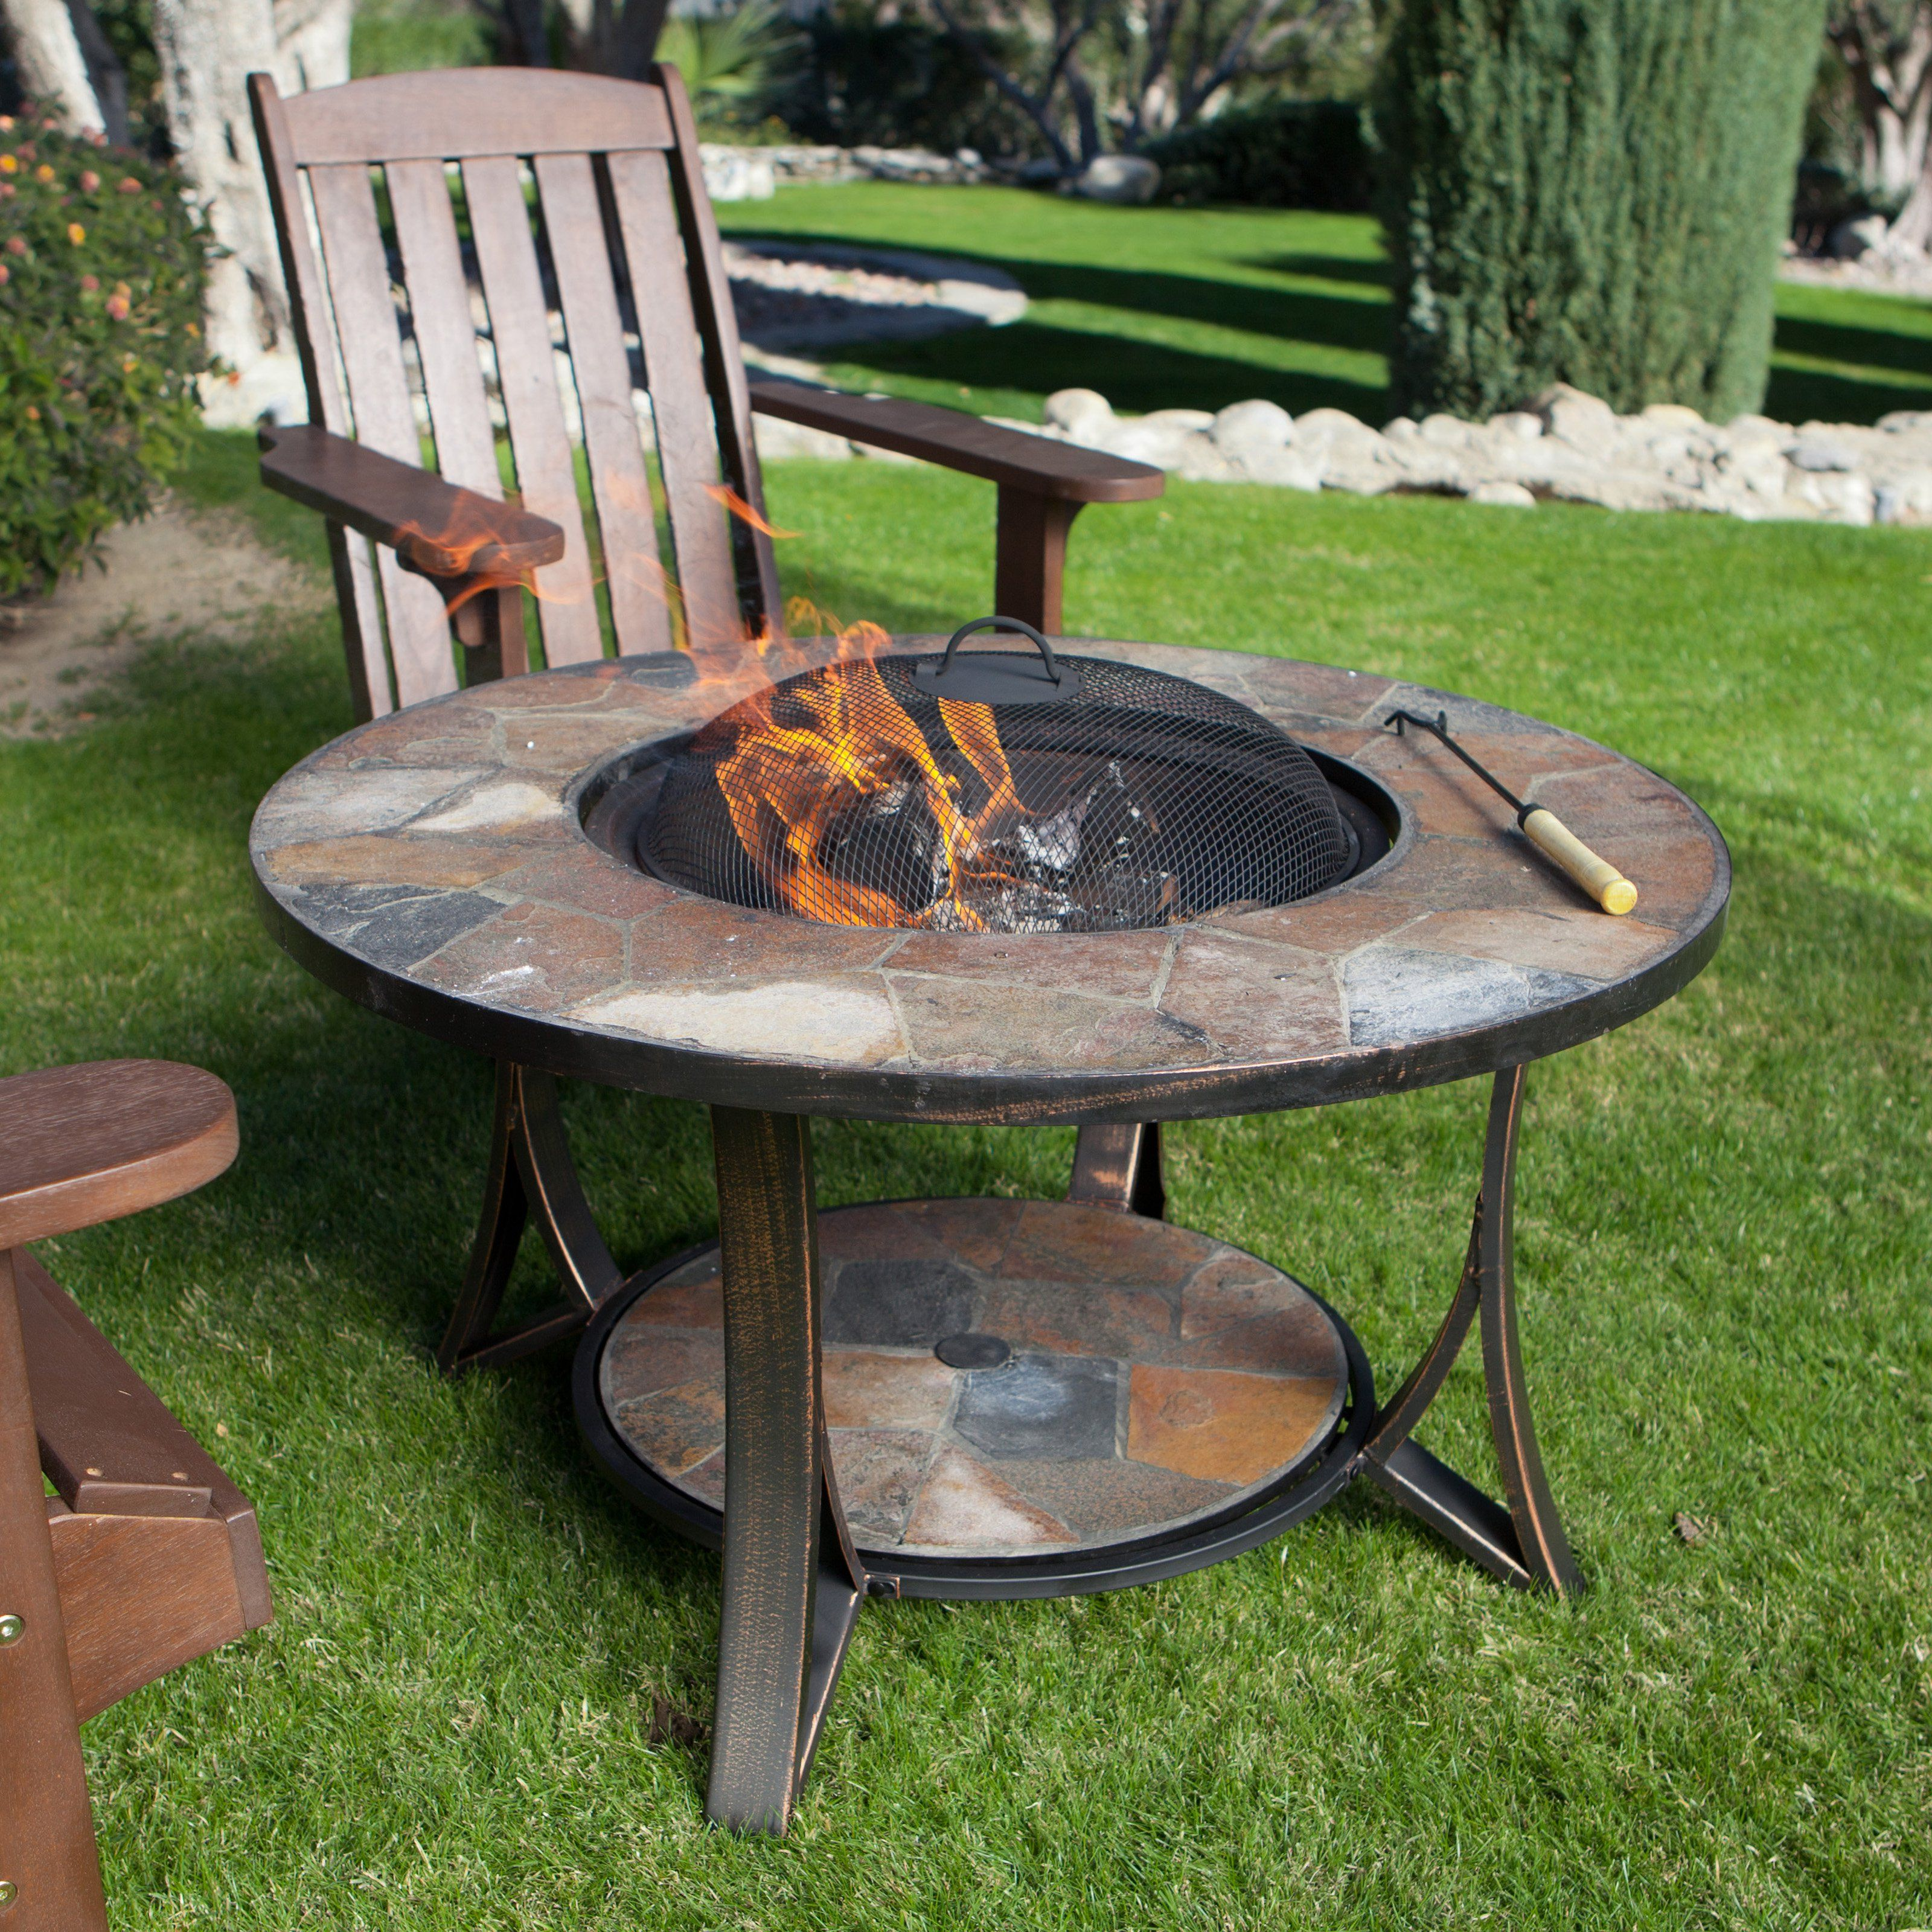 Arizona sands ii fire pit table with free cover the arizona sands ii round fire pits table has been redesigned to make the table higher and create a